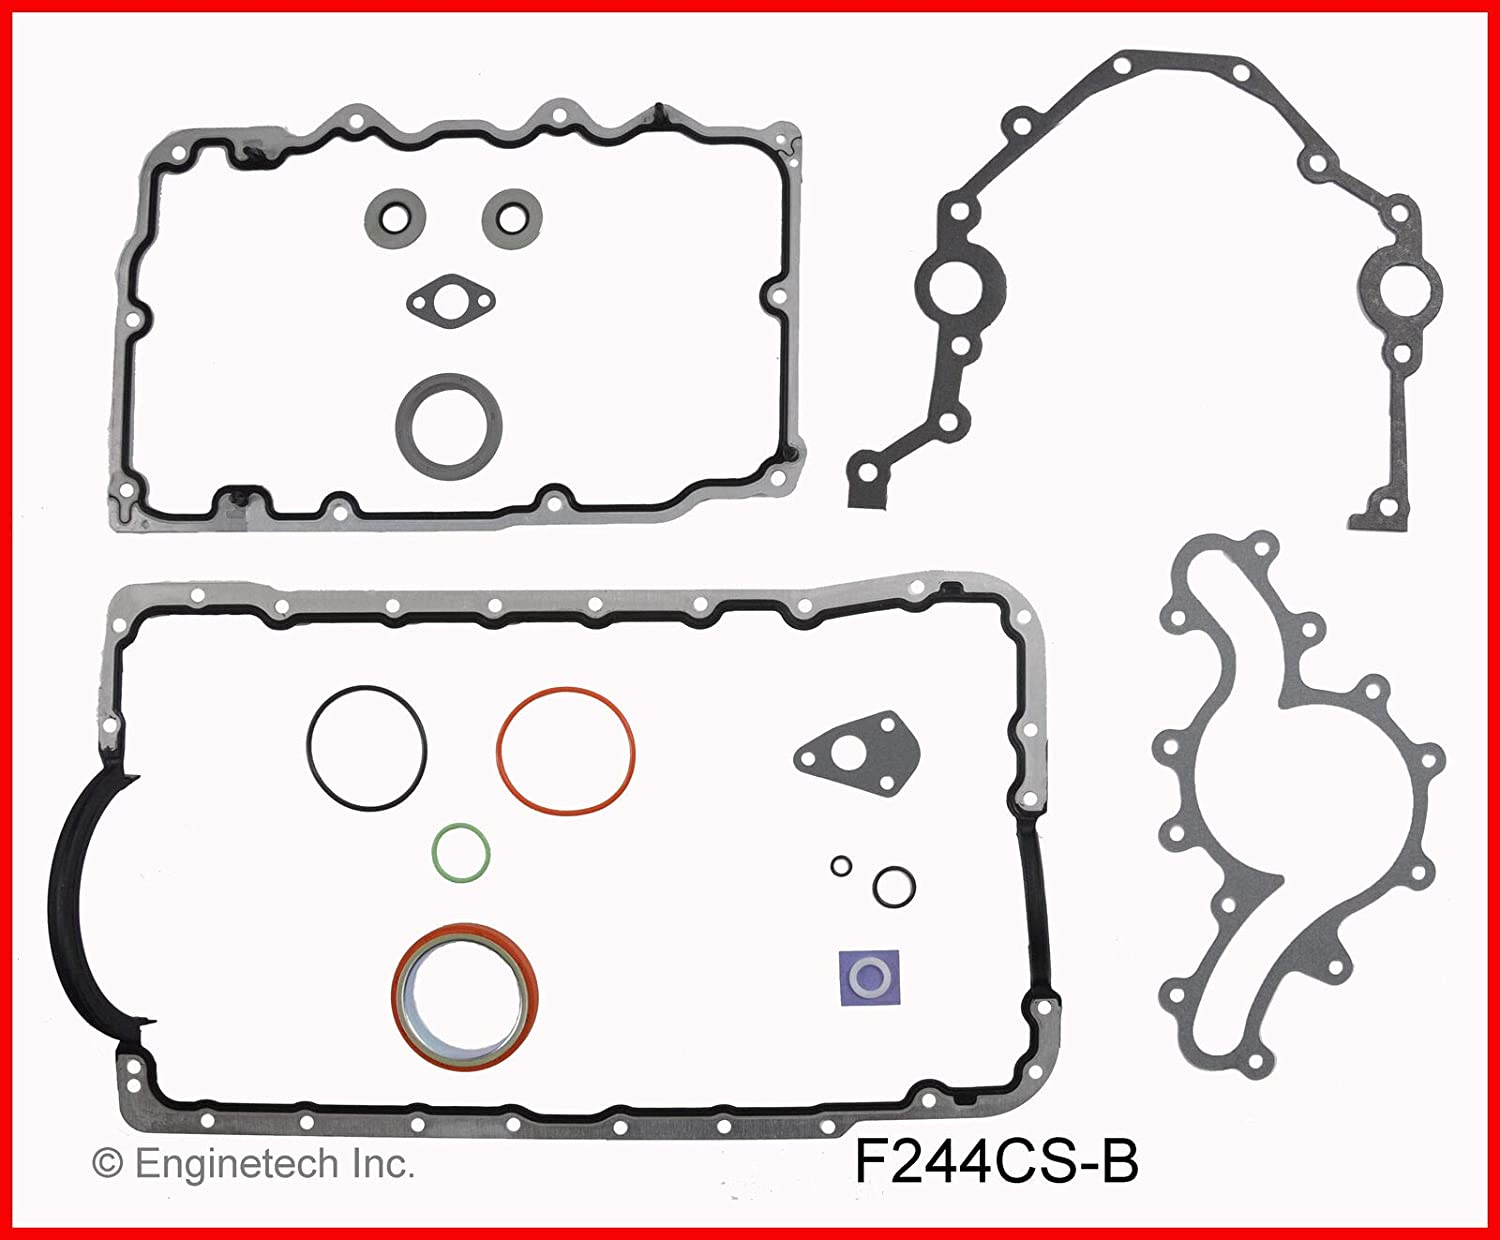 ENGINETECH F244CS-B Lower Conversion Gasket Set Compatible with 1997-2011 Ford Mazda Land Rover 244 4.0L SOHC V6 12-Valve Truck /& Car Engines